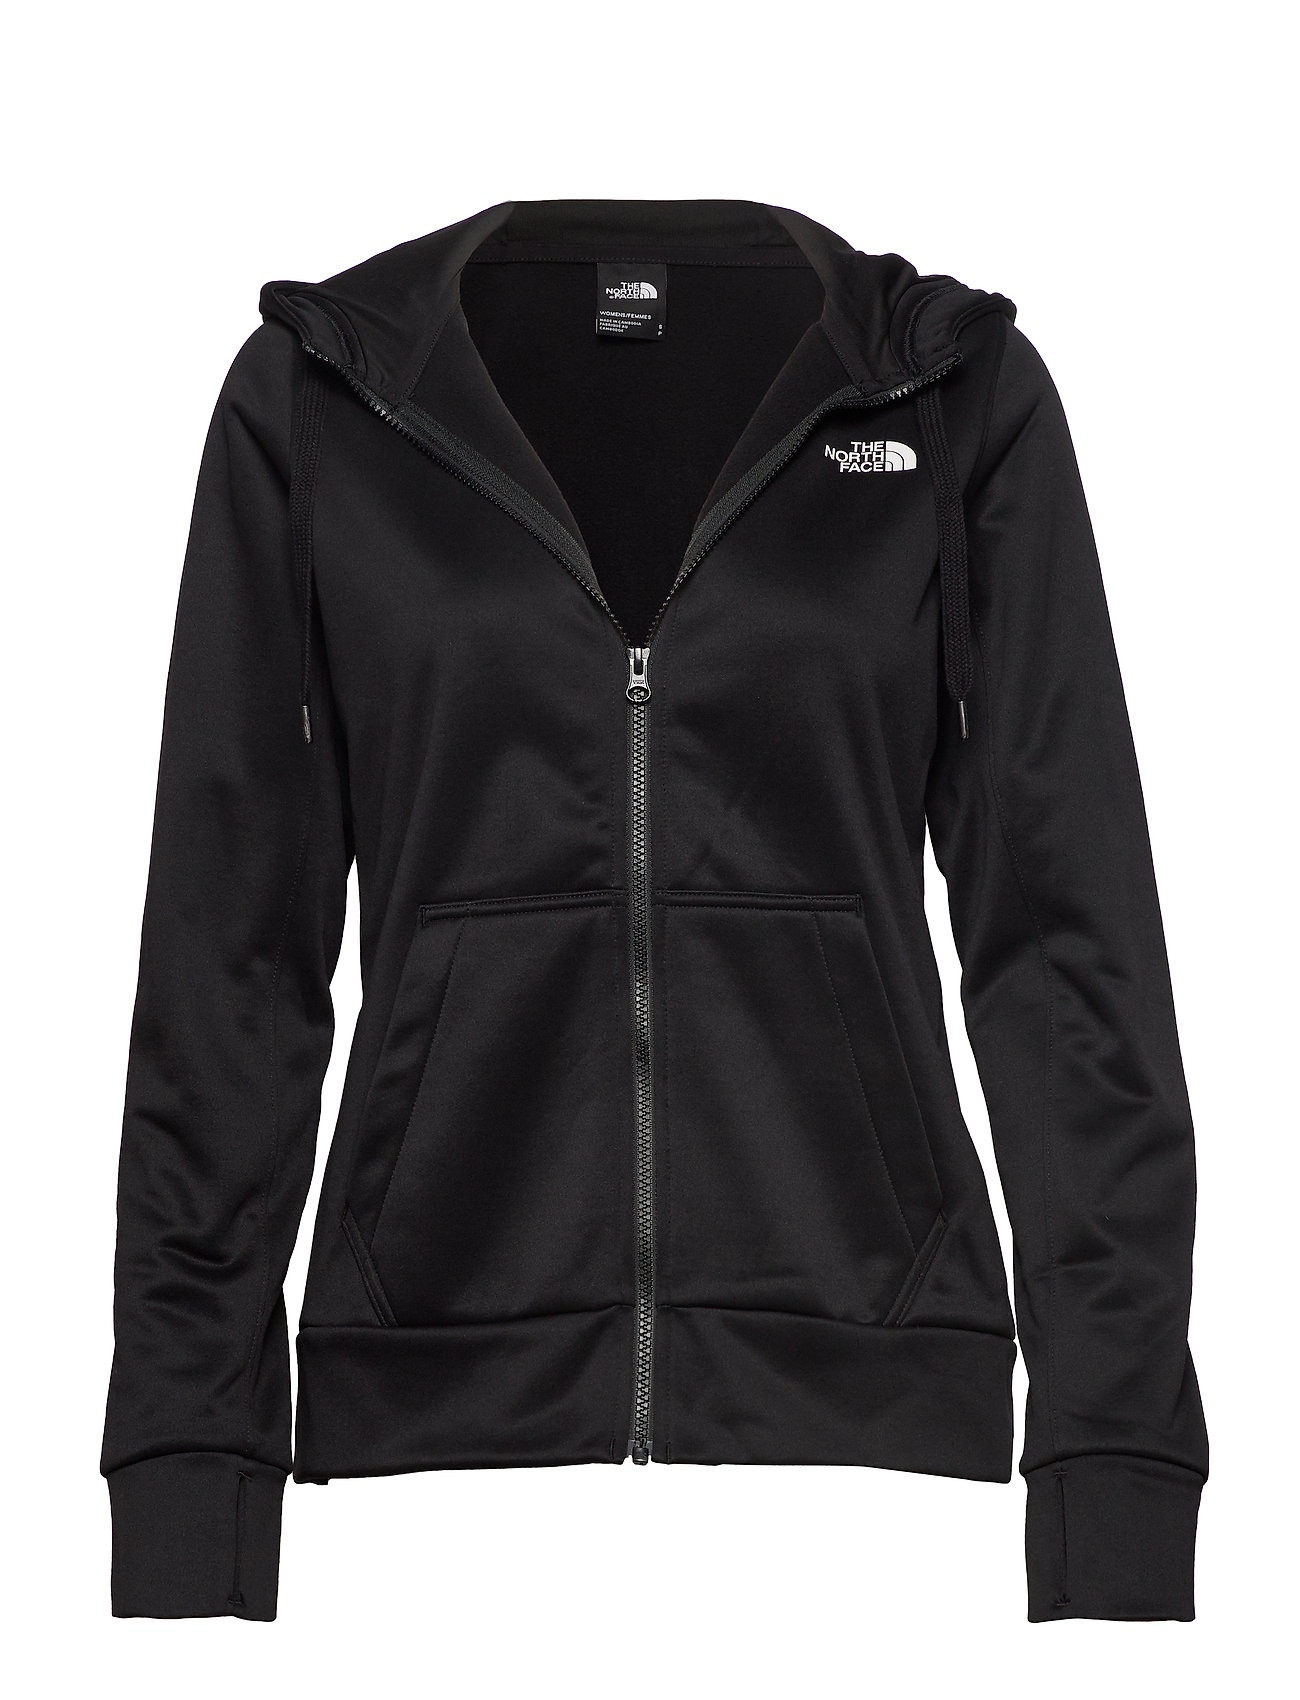 Image of W Surgent Fullzip Hd Hoodie Trøje Sort The North Face (3229252763)